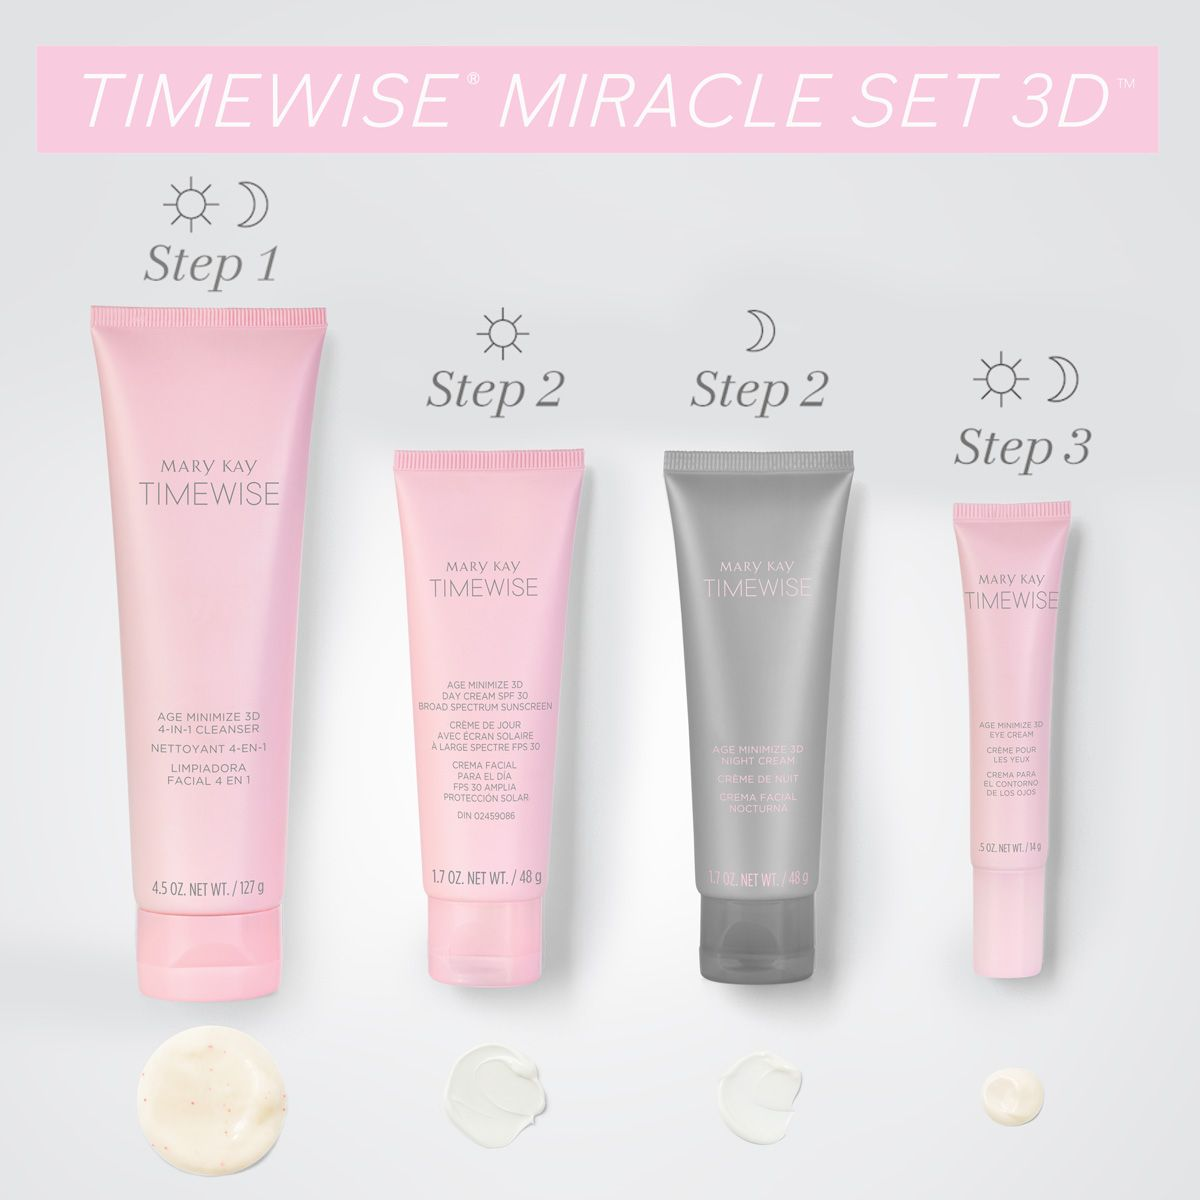 After 18 Years Mary Kay Is Introducing The New Timewise Miracle Set 3d If You Would Like To Know Mary Kay Cosmetics Mary Kay Marketing Mary Kay Miracle Set